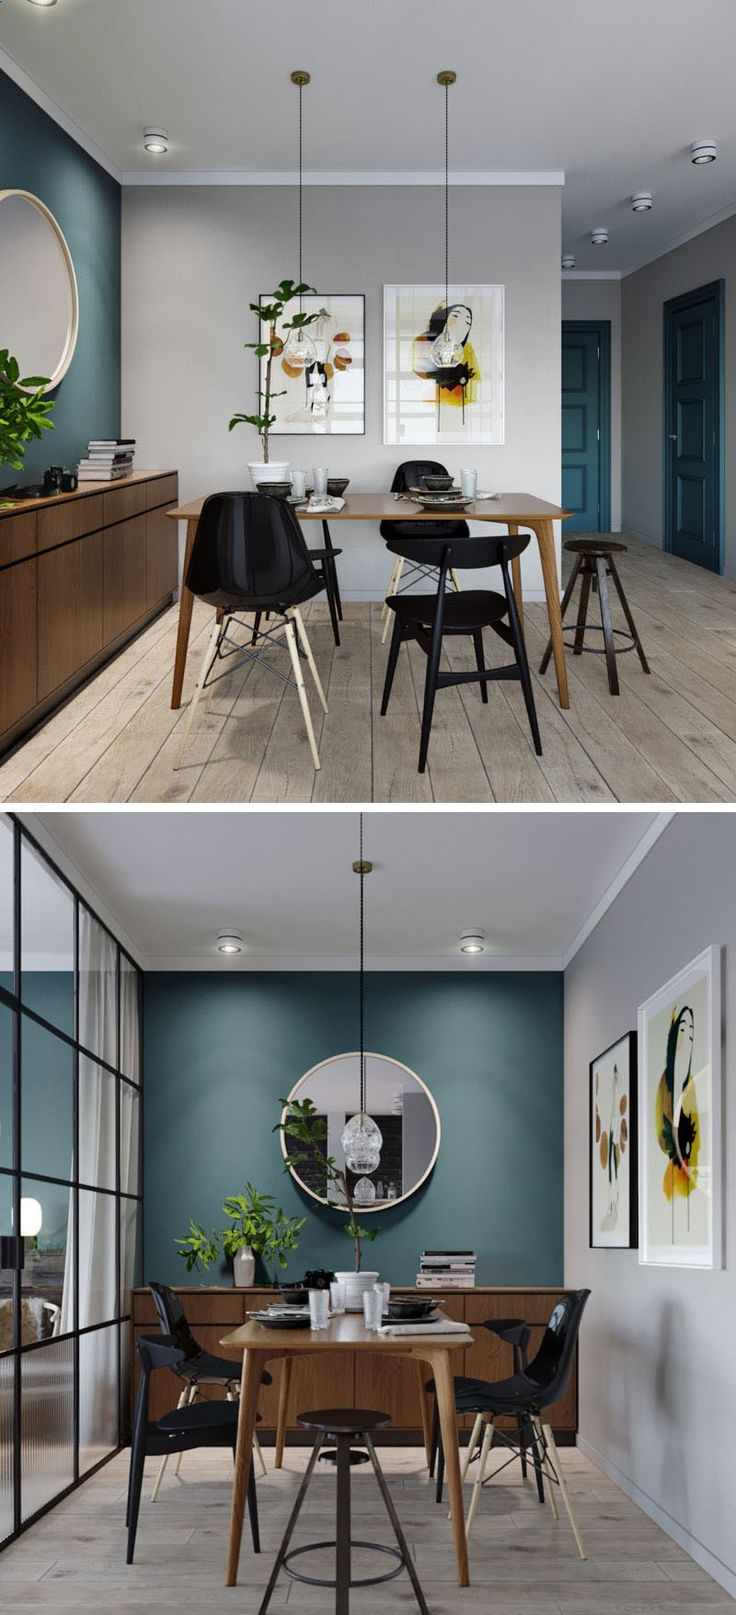 Best 25 Accent Wall Colors Ideas On Pinterest: Best 25+ Teal Accent Walls Ideas On Pinterest